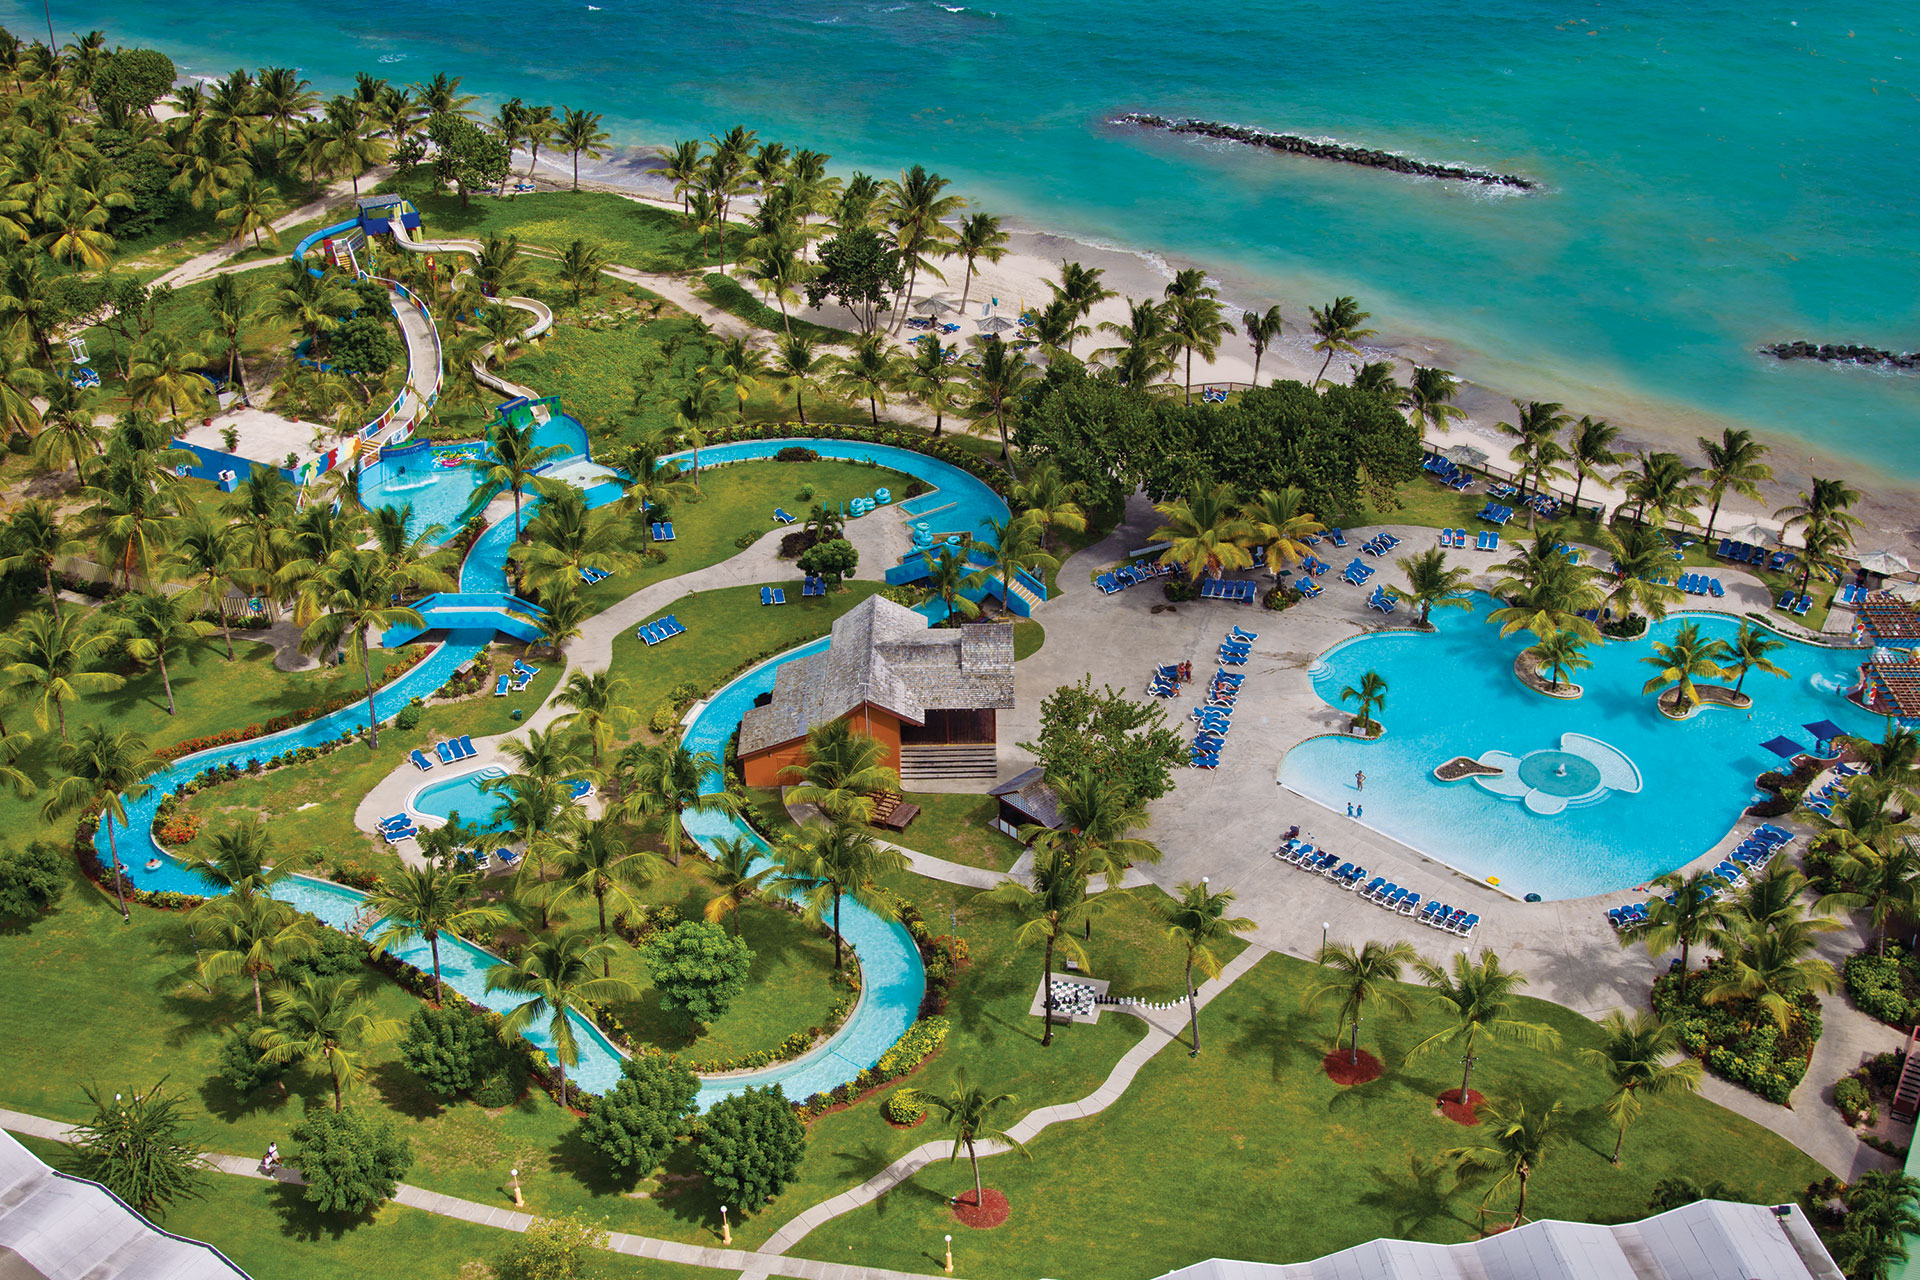 Aerial View of Water Park at Coconut Bay Beach Resort & Spa; Courtesy of Coconut Bay Beach Resort & Spa